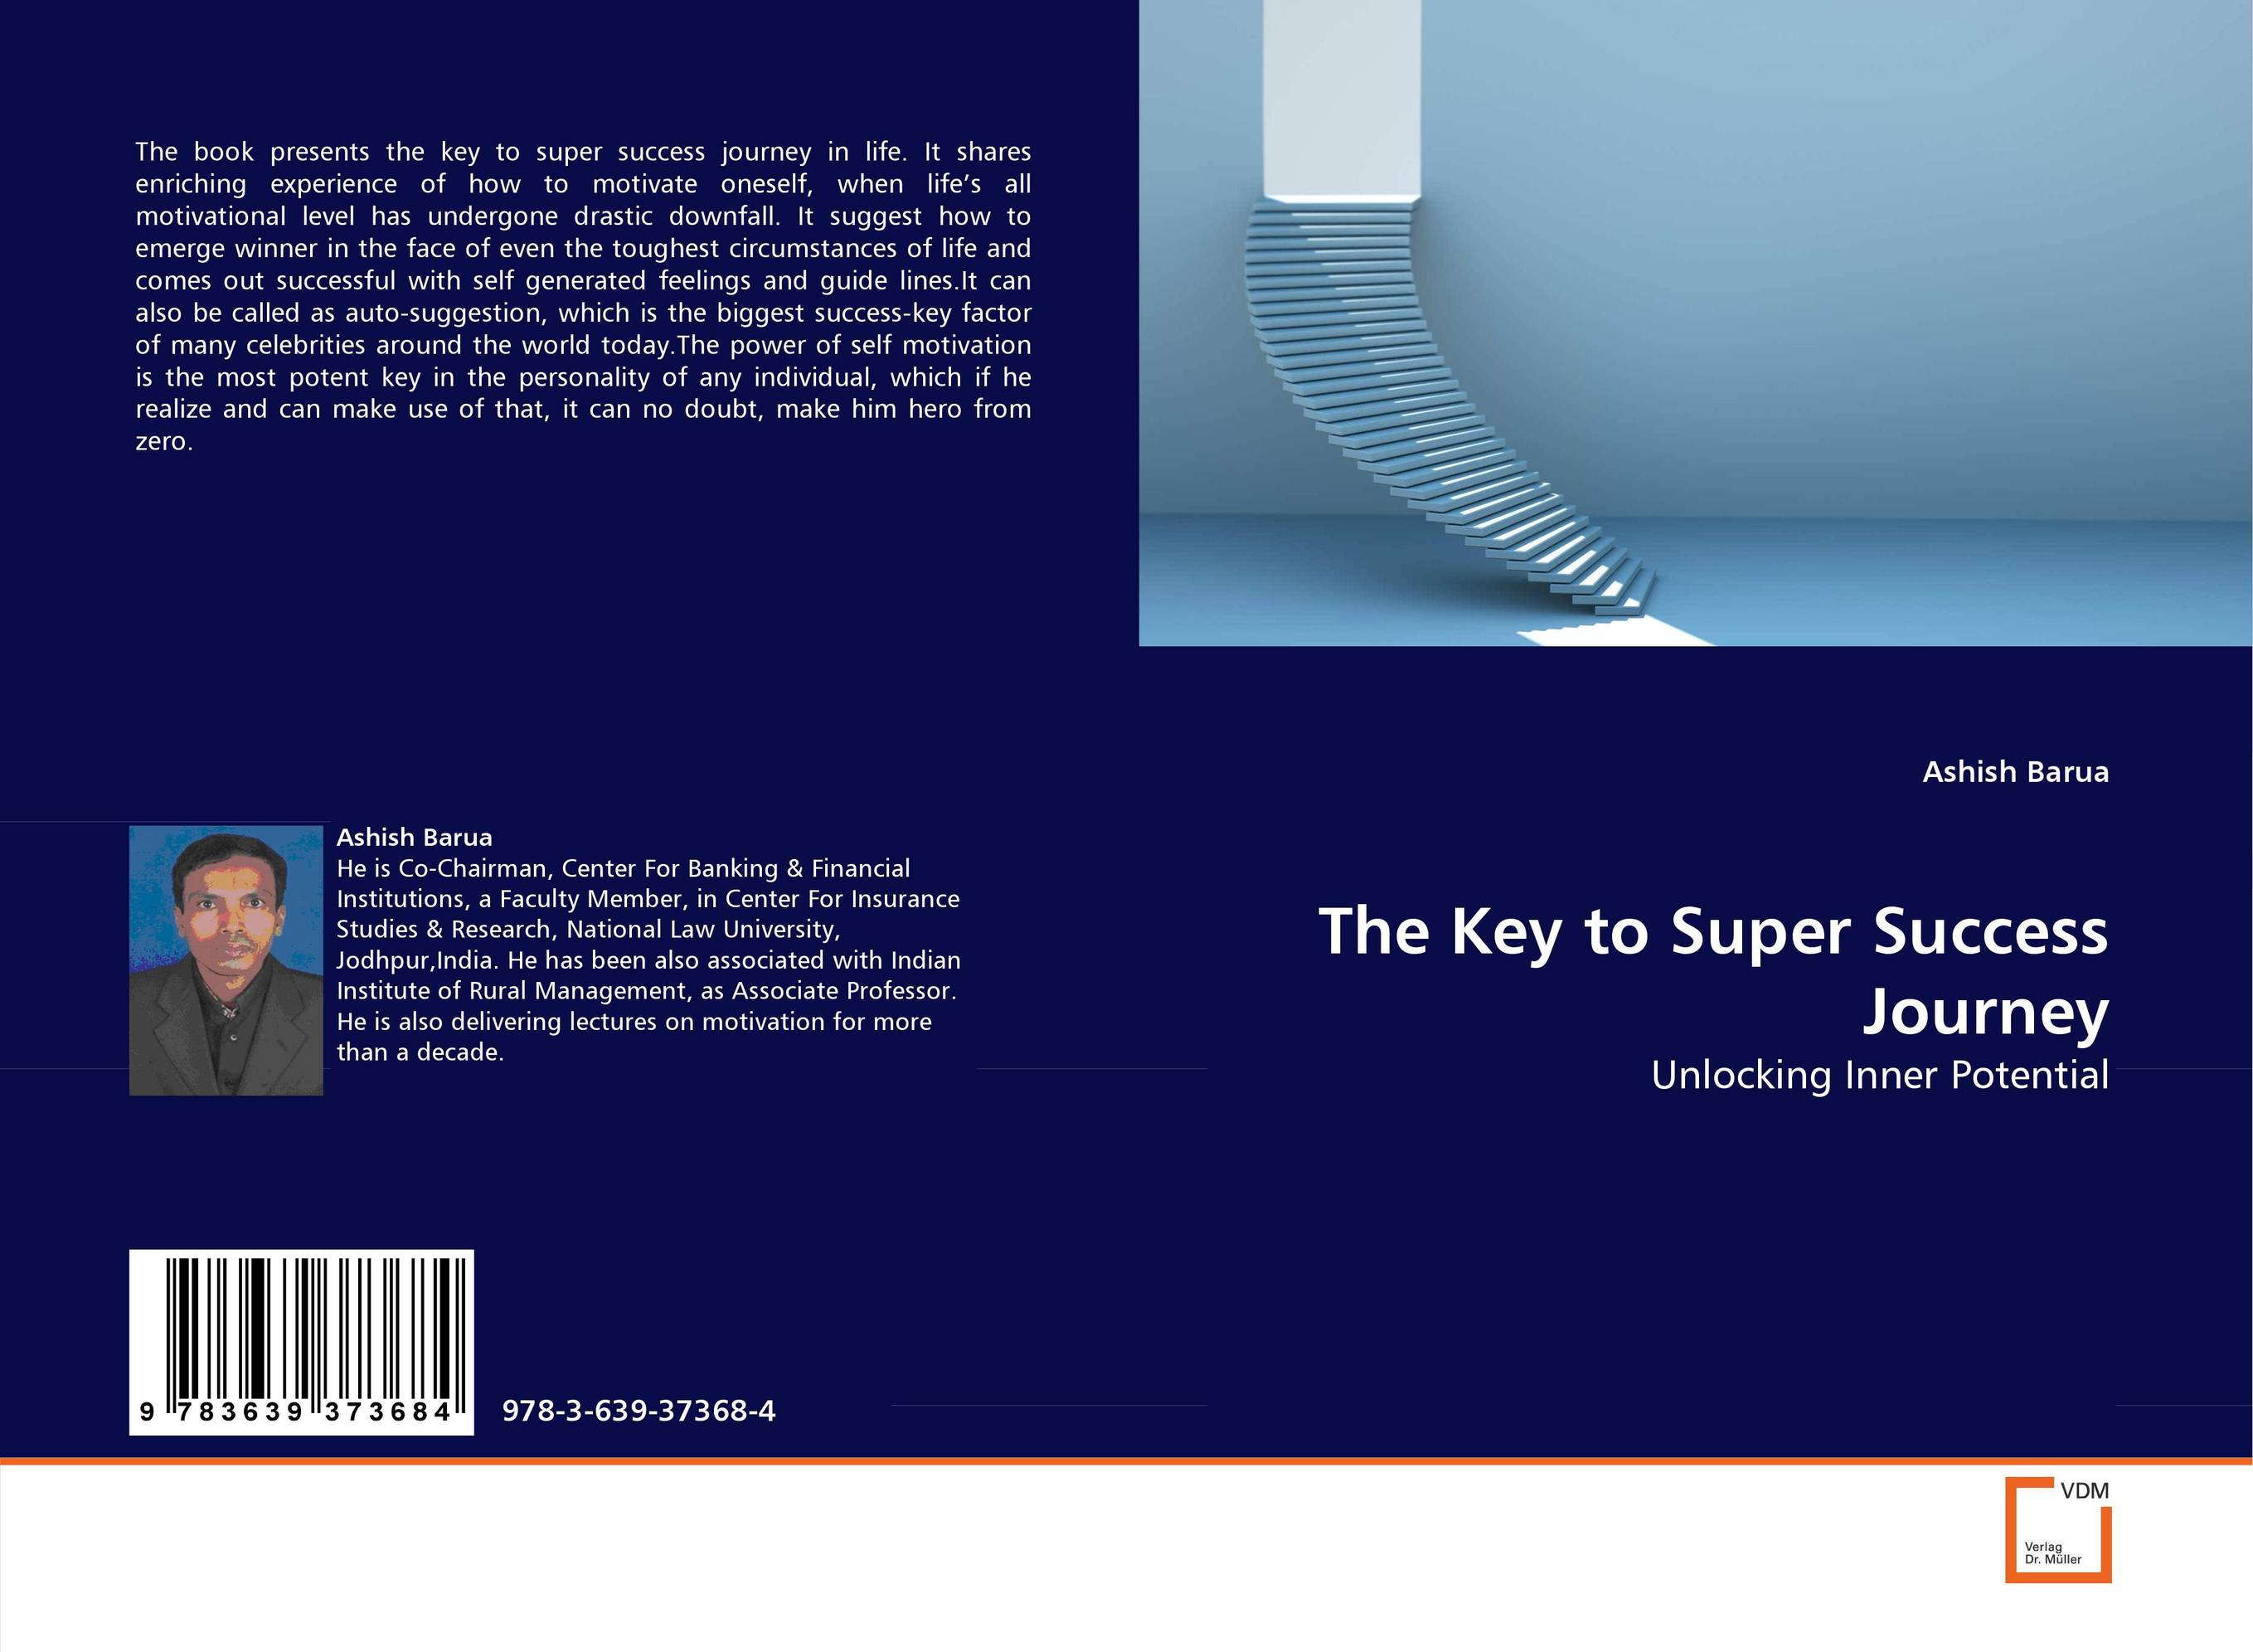 The Key to Super Success Journey travels of the zephyr journey around the world